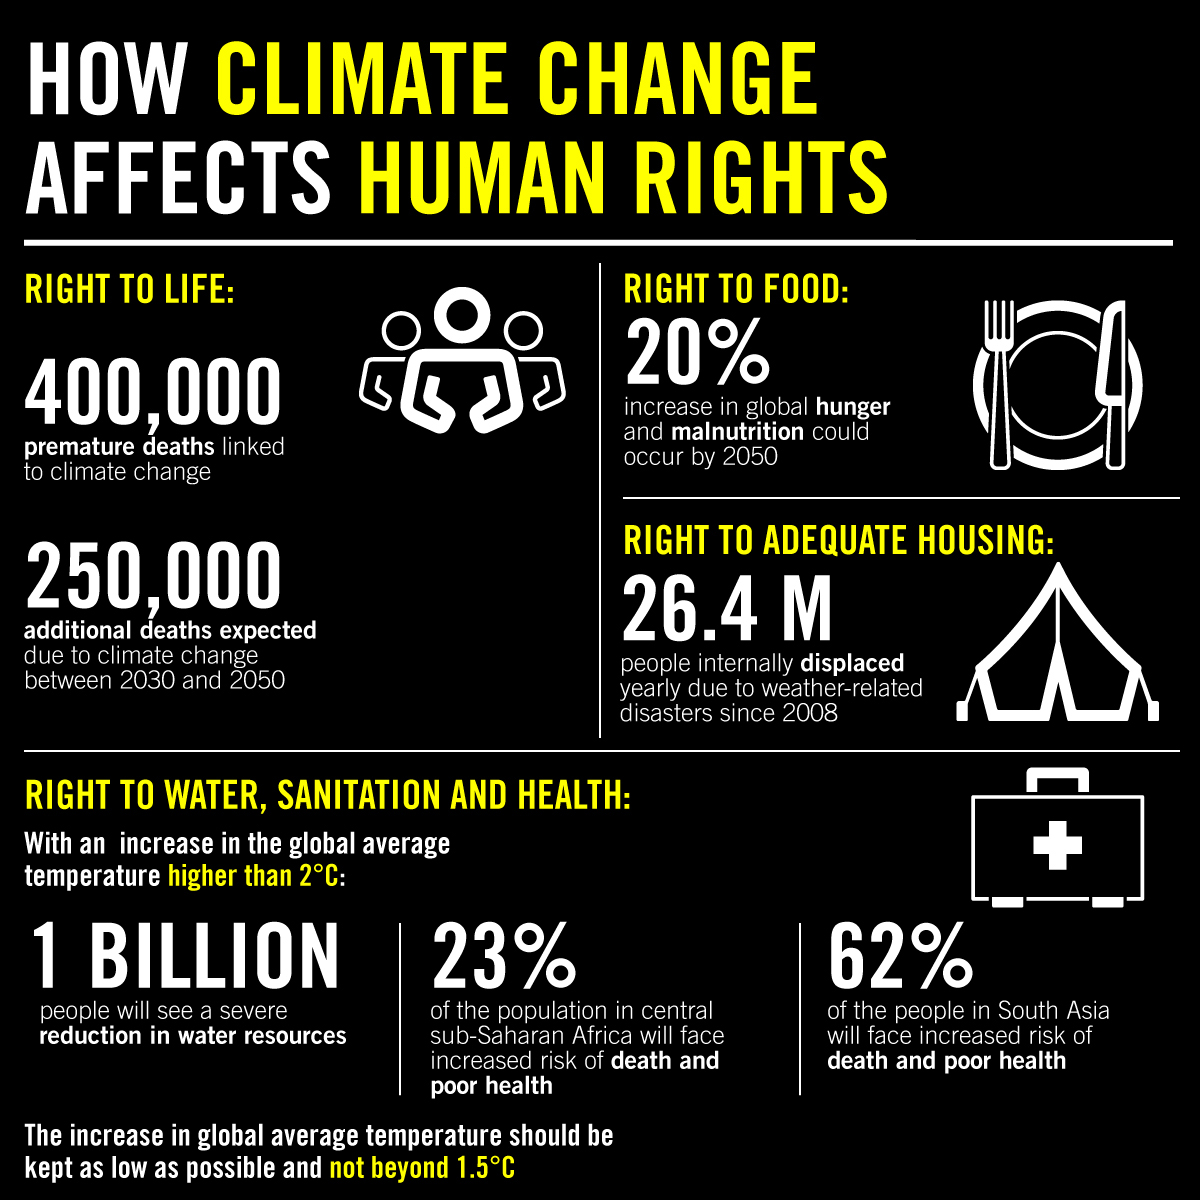 Right to life: climate change threatens our existence on this planet. We've all noticed extreme weather events, such as the 2013 Heatwave in Europe that claimed 35,000 live The World Health Organization predicts climate change will cause 250,000 deaths per year from 2030–2050, due to malaria, malnutrition, diarrhoea and heat stress. Right to health: people living in poorer countries will experience undernutrition more and more, due to less food production. They will also experience more disease. Children exposed to the natural disasters caused by climate change may suffer from post-traumatic stress disorders as a direct result.  Right to housing: increases in extreme weather create a higher likelihood of housing loss to events like floods and wildfires. Many people are already displaced internationally from such events. Issues such as Drought, erosion and flooding will also impact our physical environments as sea-level rise.  Water and sanitation: increases in melting snow and ice, higher temperatures, rising sea levels, and lessening rainfall show the affects of climate change on water sources. More than one billion people do not have access to clean water; this number will increase as climate change continues. Extreme weather events like cyclones and floods affect water and sanitation systems and leave behind contaminated water, which causes disease to spread. Sewage systems in urban areas will also be affected.